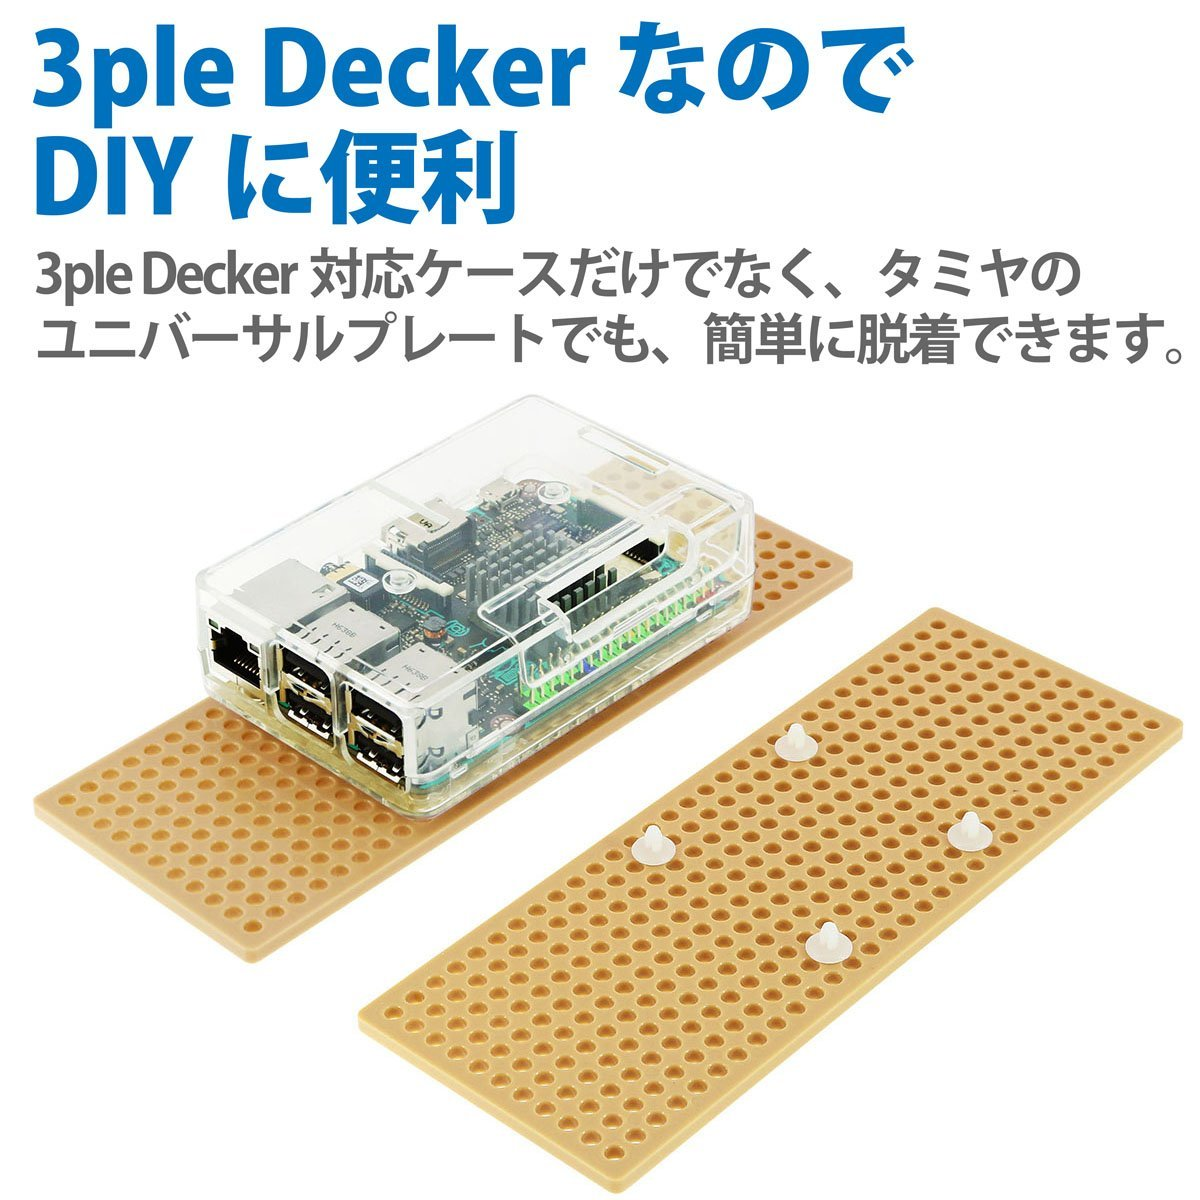 asus tinker board s コンプリートスターターキット standard physical